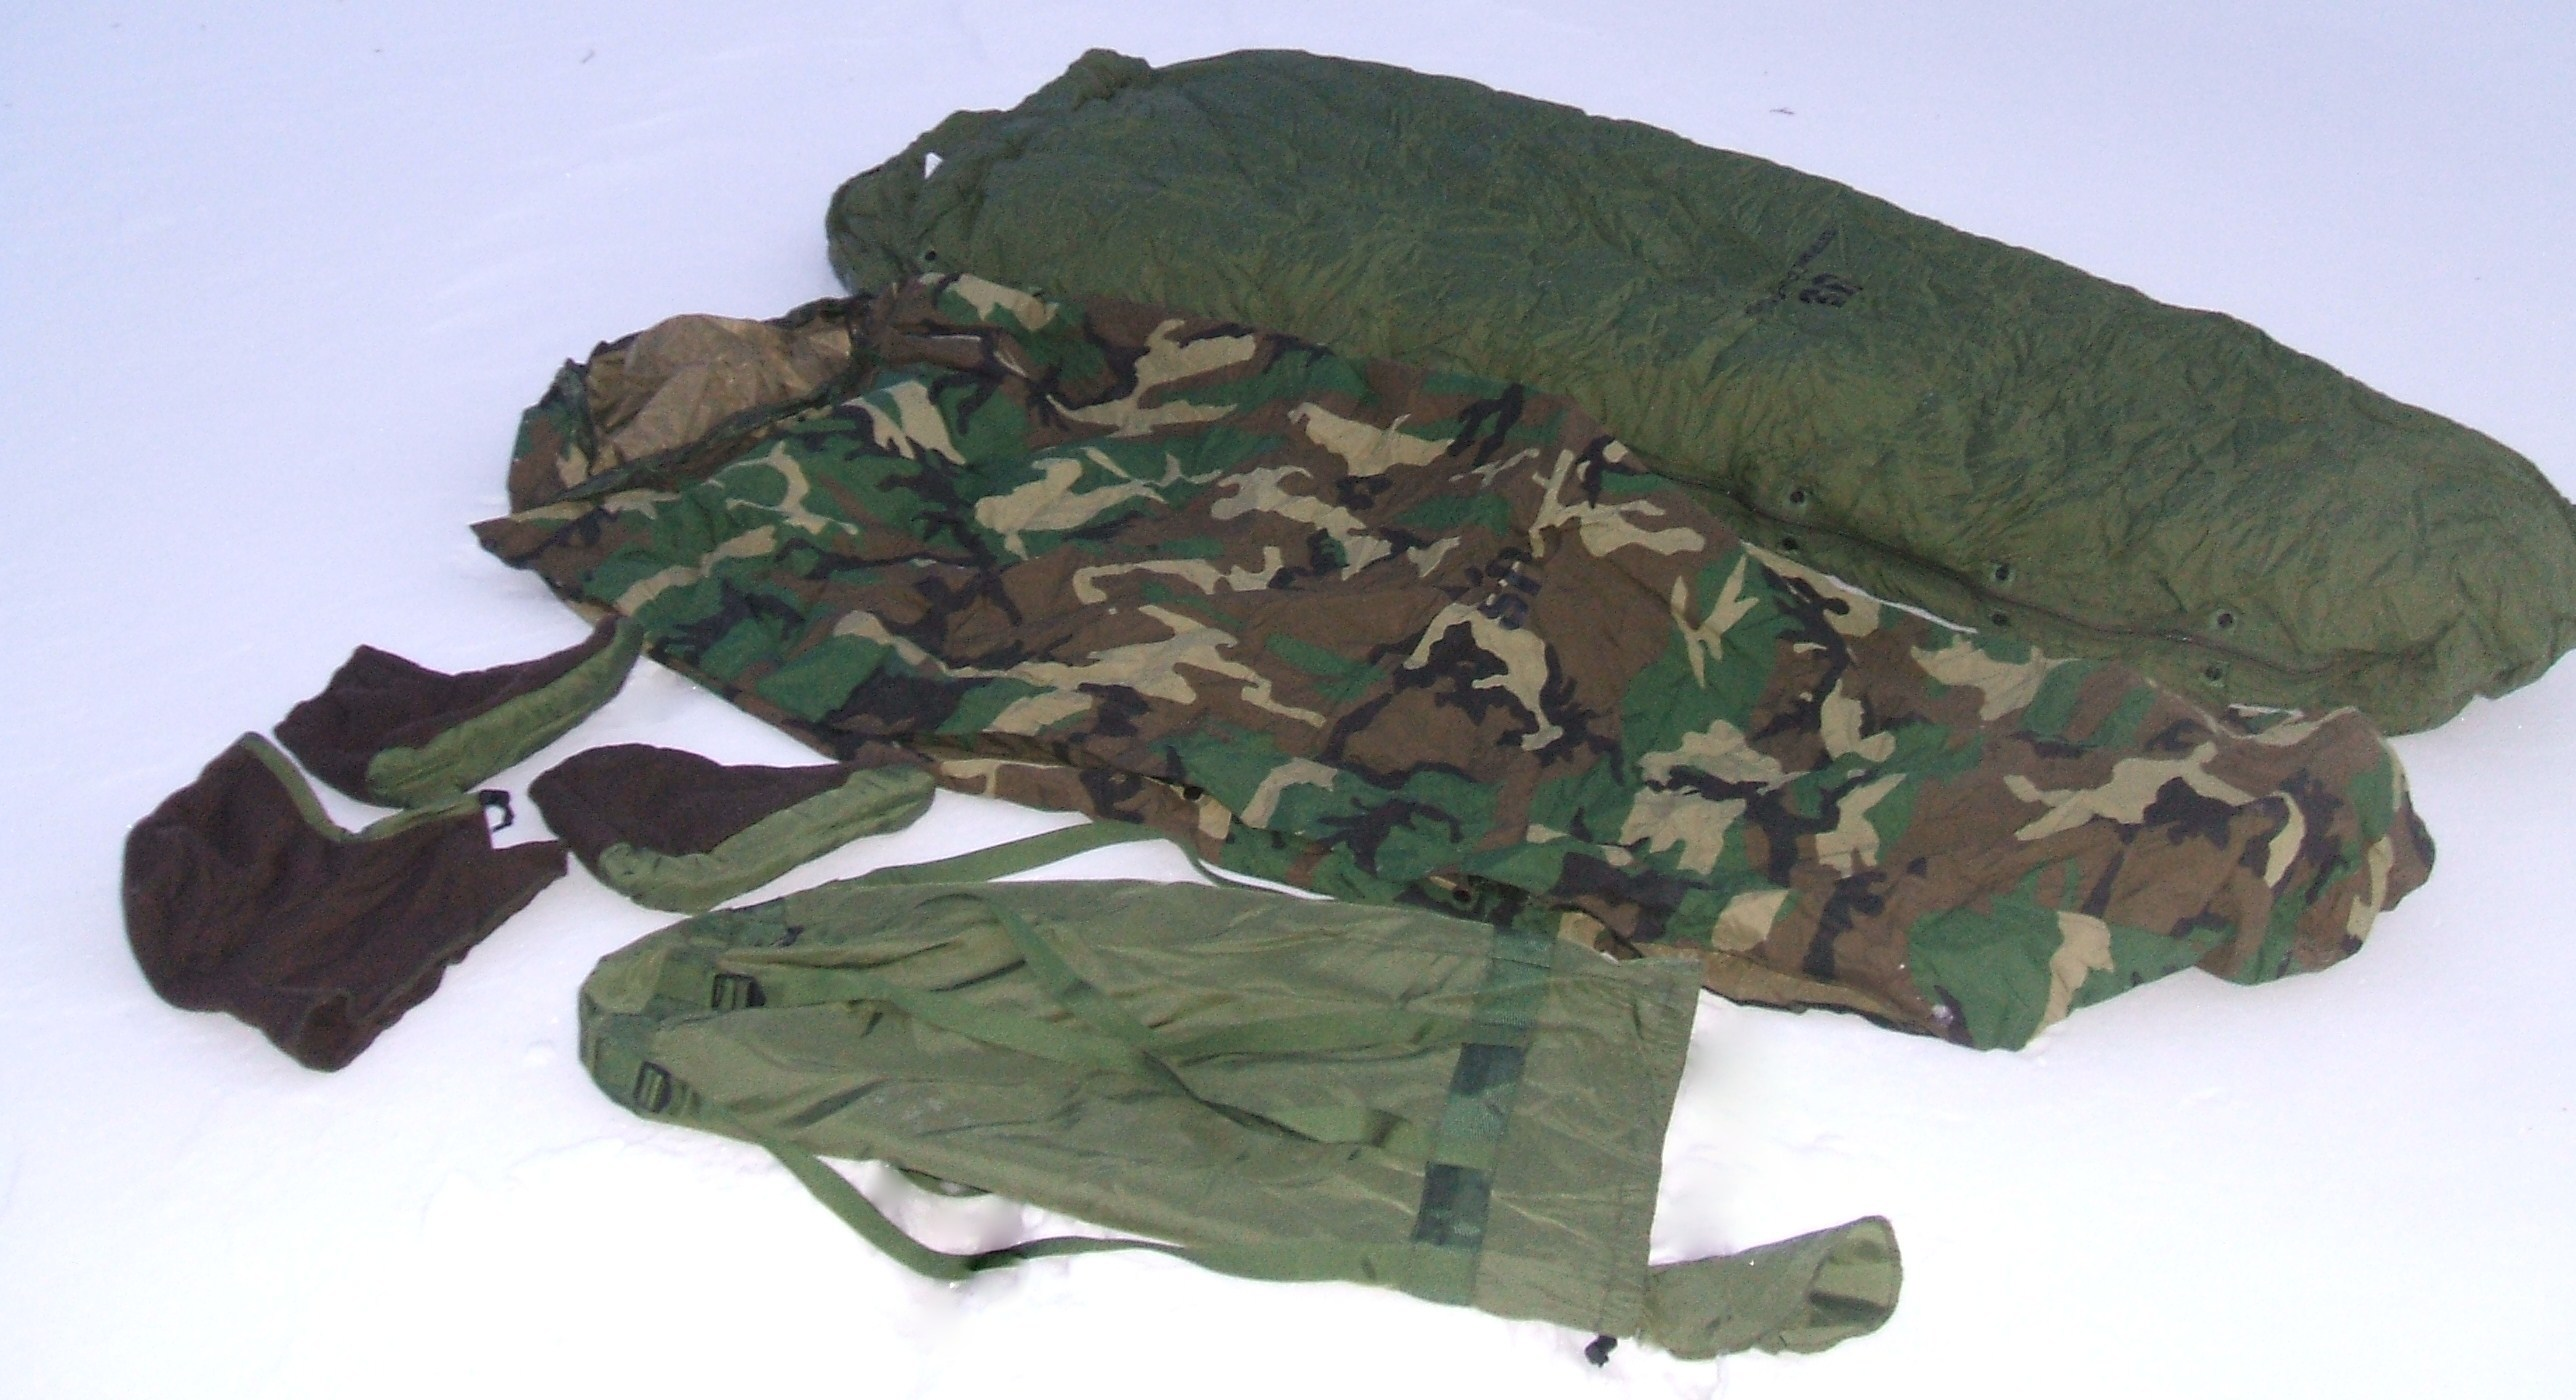 For Sale US Military 5 piece Extreme Cold Weather Sleep System-sleeping-system-060.jpg